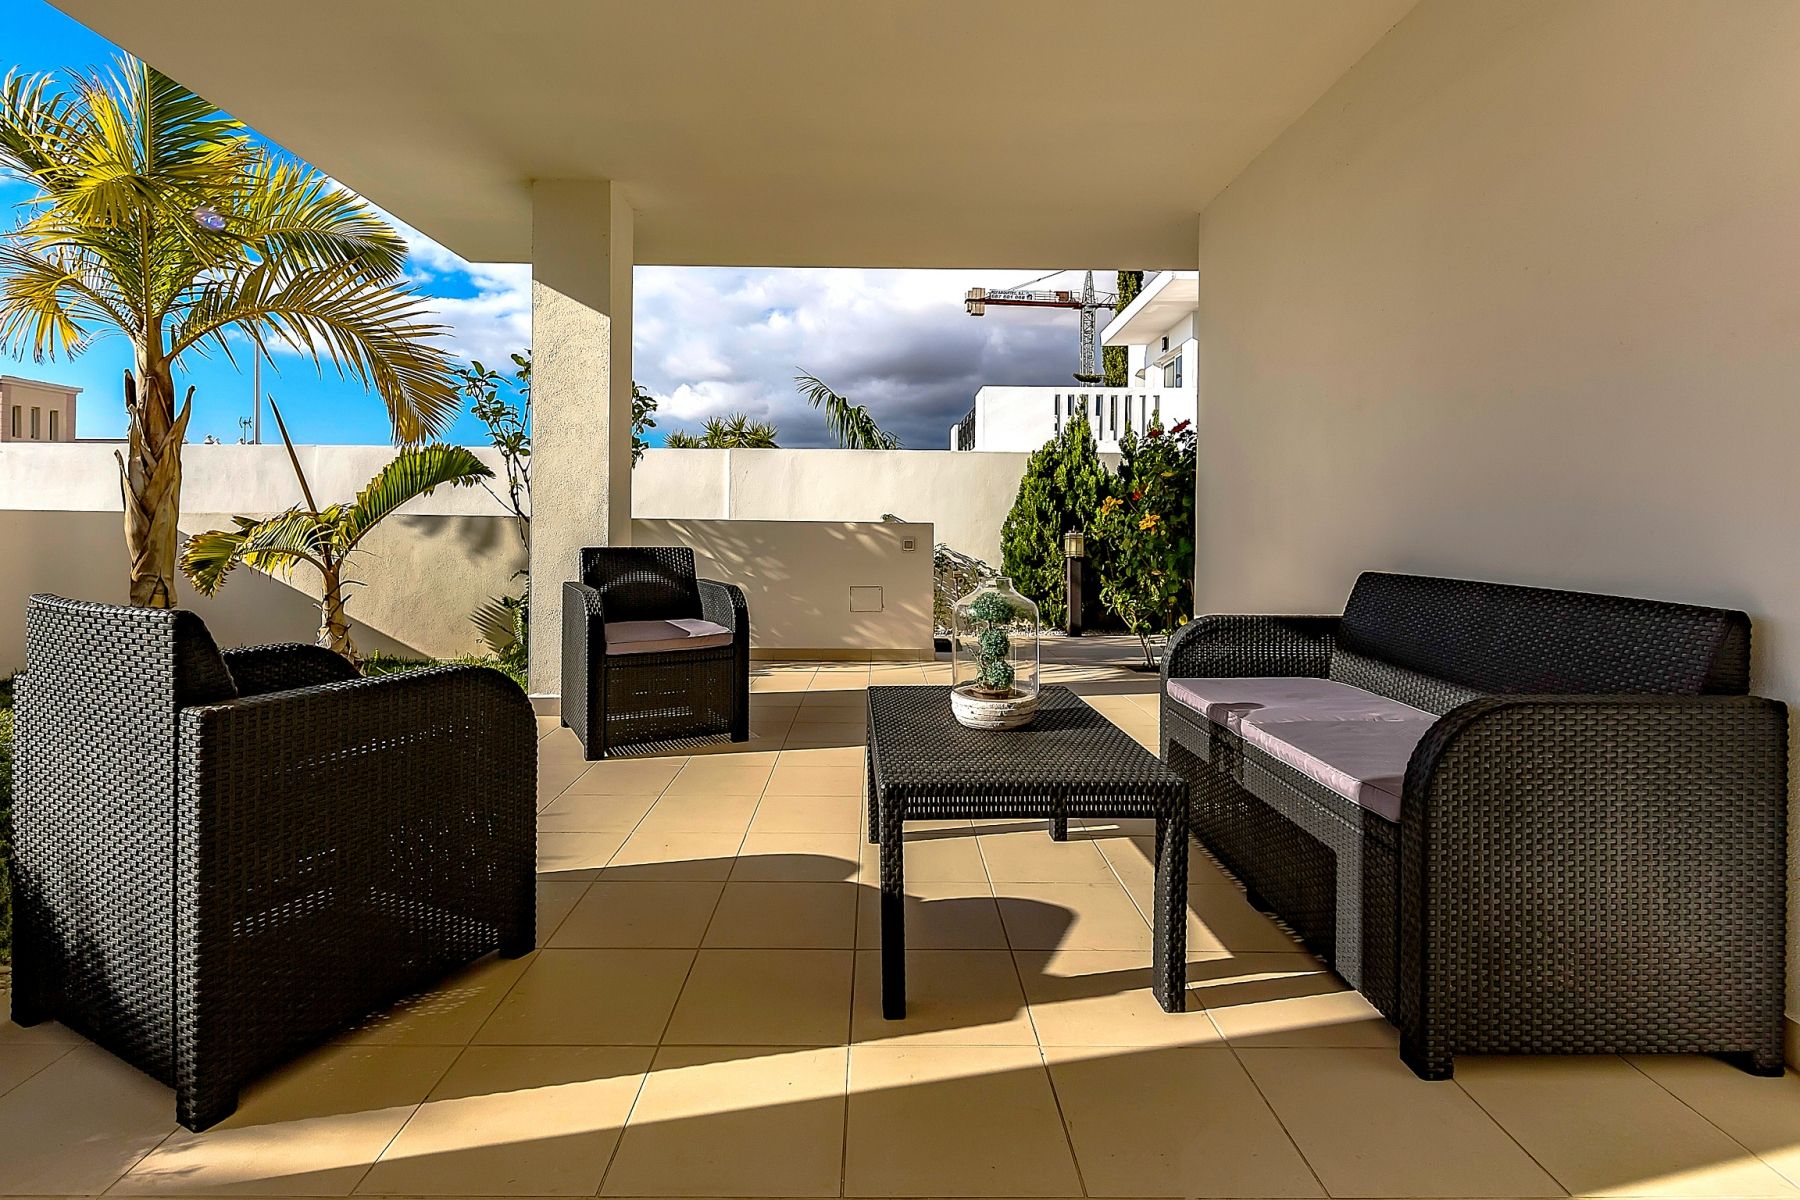 Properties for Sale in Tenerife, Canary Islands, Spain   SylkWayStar Real Estate. Luxury villa in the fashionable area of the south of the island of Tenerife – Madroñal.. Image-22831